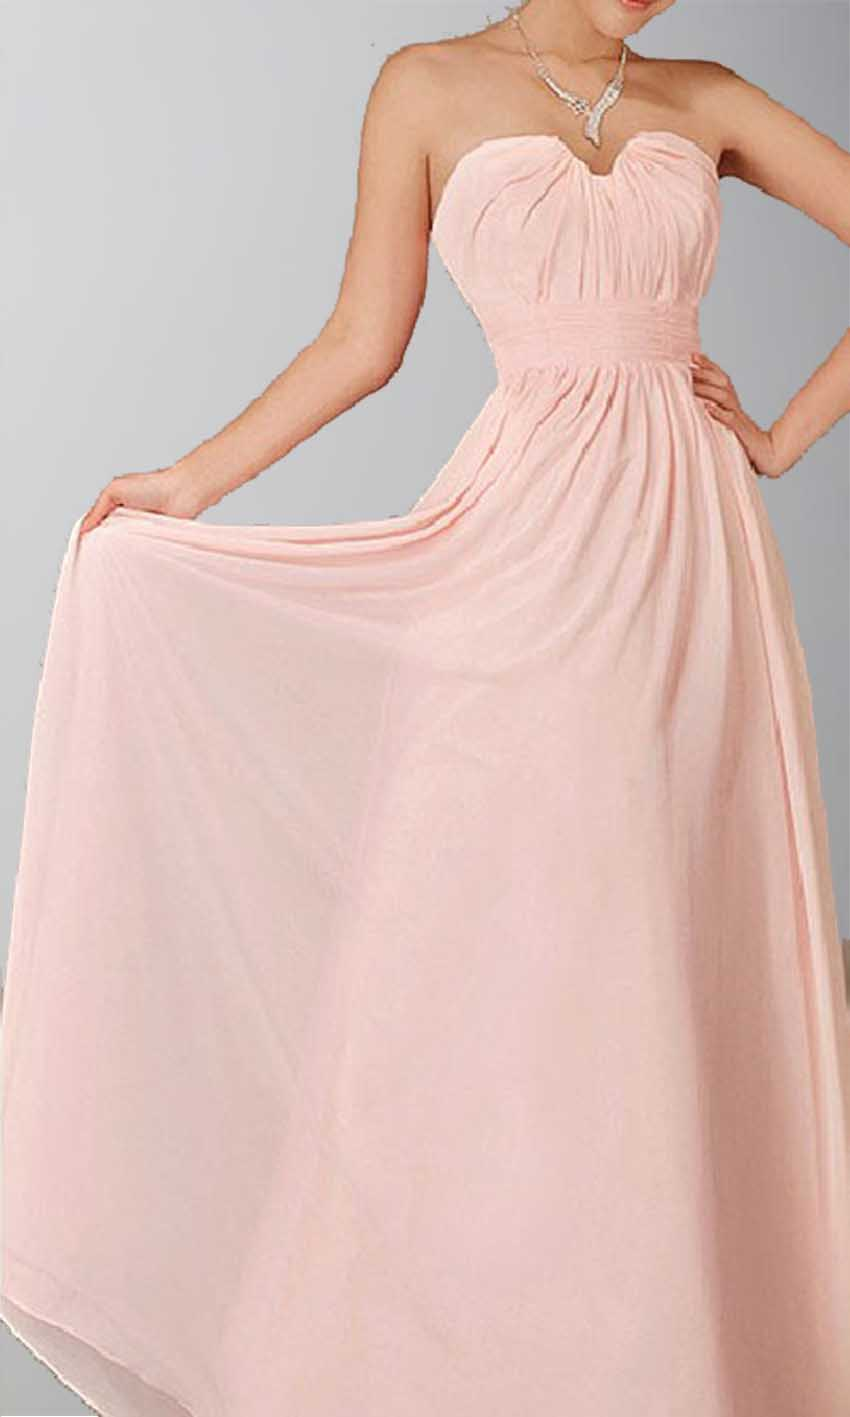 A-line Sweetheart Neck Chiffon Long Prom Gown KSP007 [KSP007] - £85.00 : Cheap Prom Dresses Uk, Bridesmaid Dresses, 2014 Prom & Evening Dresses, Look for cheap elegant prom dresses 2014, cocktail gowns, or dresses for special occasions? kissprom.co.uk offers various bridesmaid dresses, evening dress, free shipping to UK etc.